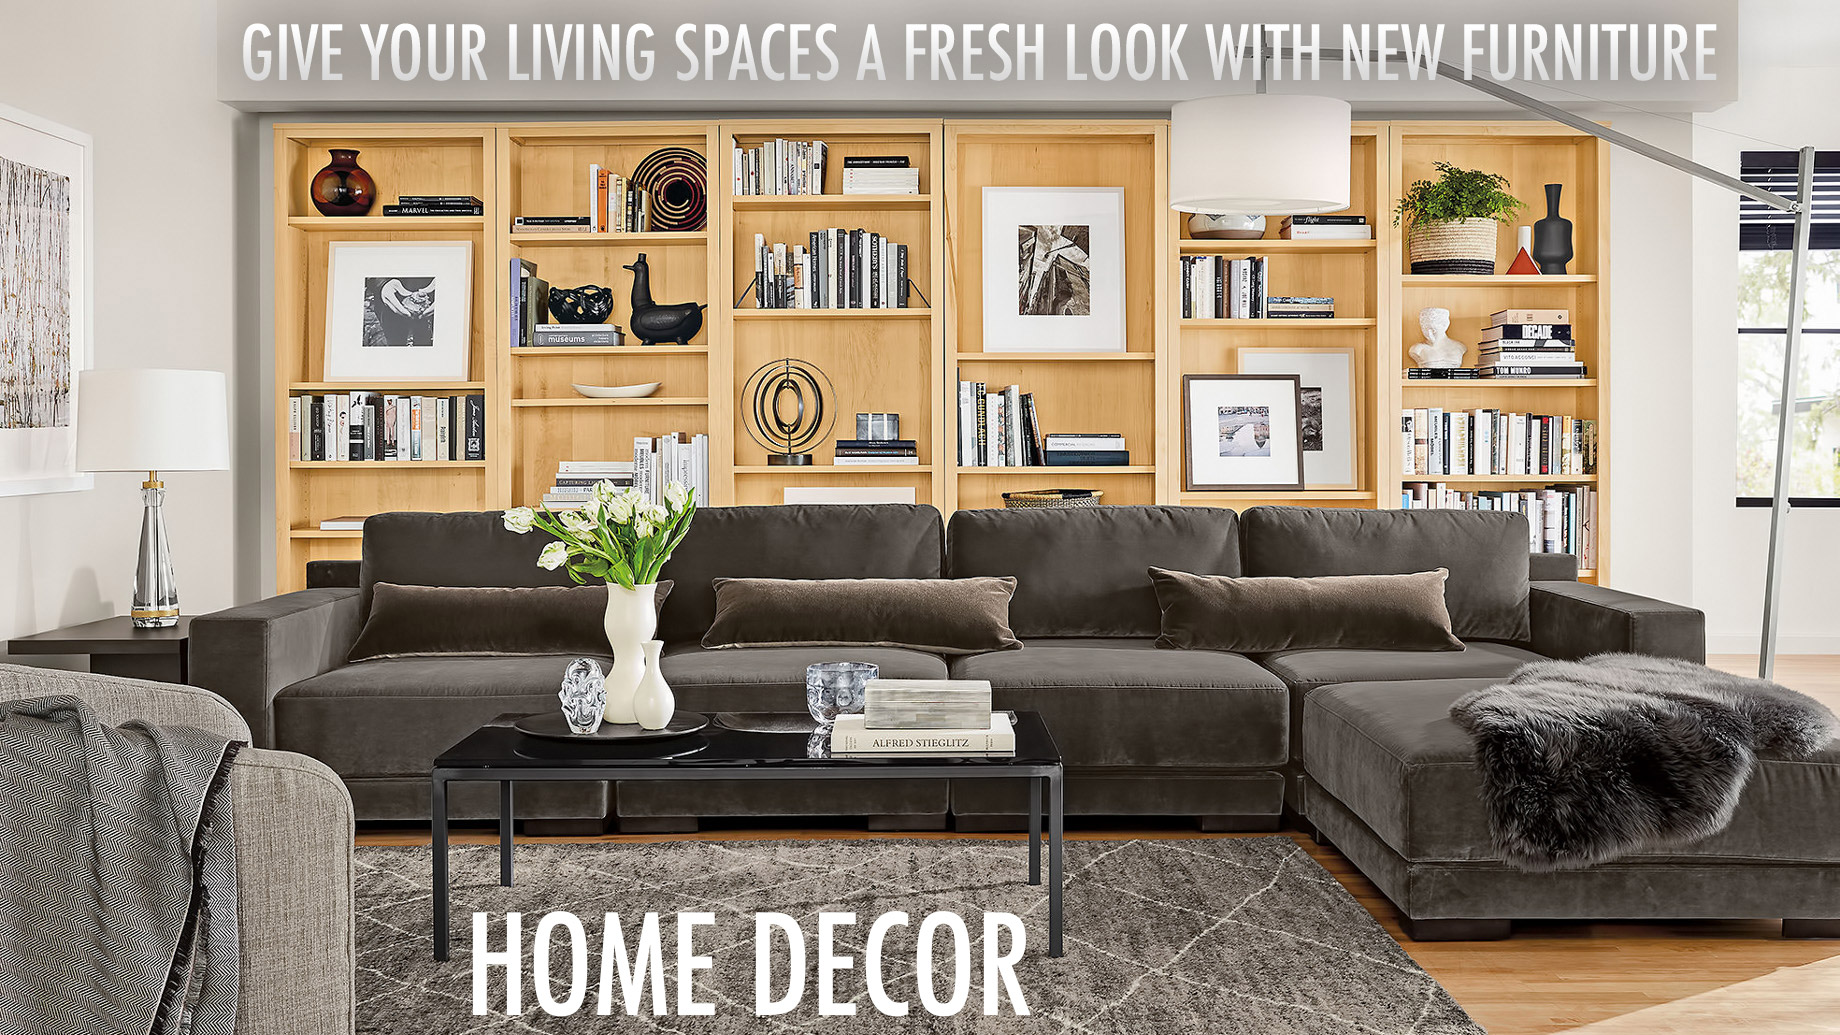 Home Decor – Give Your Living Spaces A Fresh Look With New ...